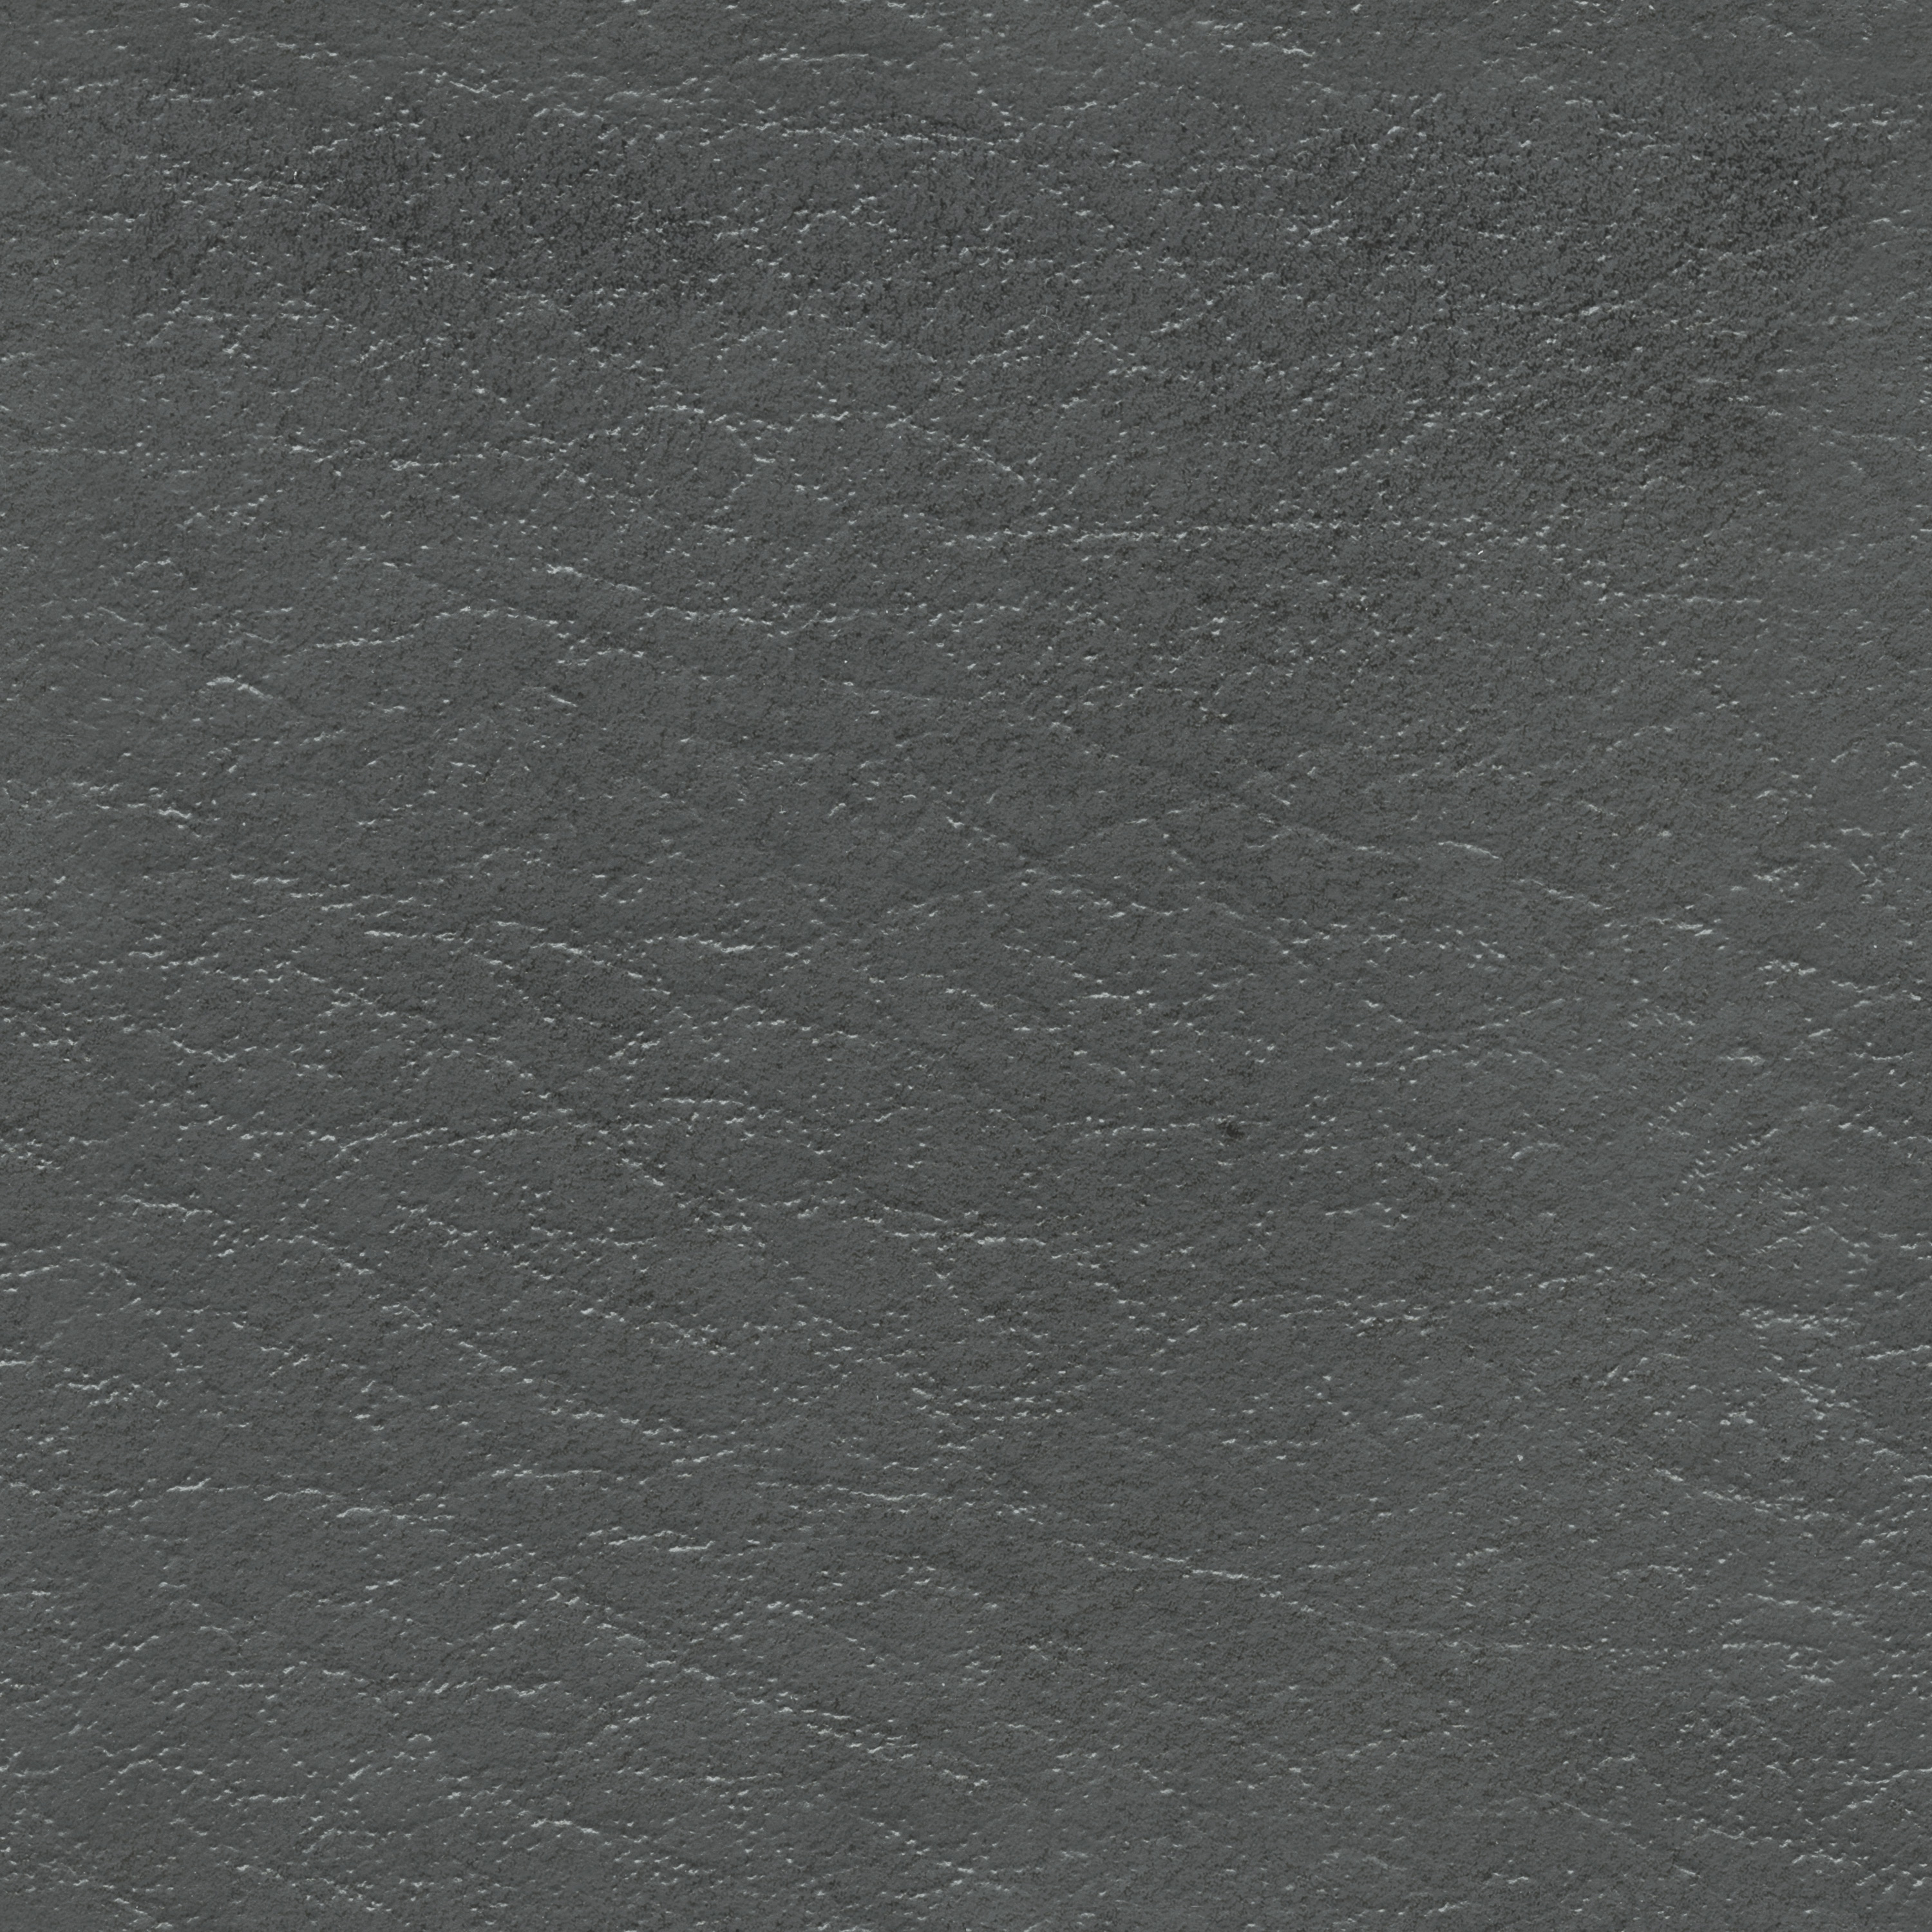 Book Cover Texture Free ~ Free seamless book cover textures texture l t